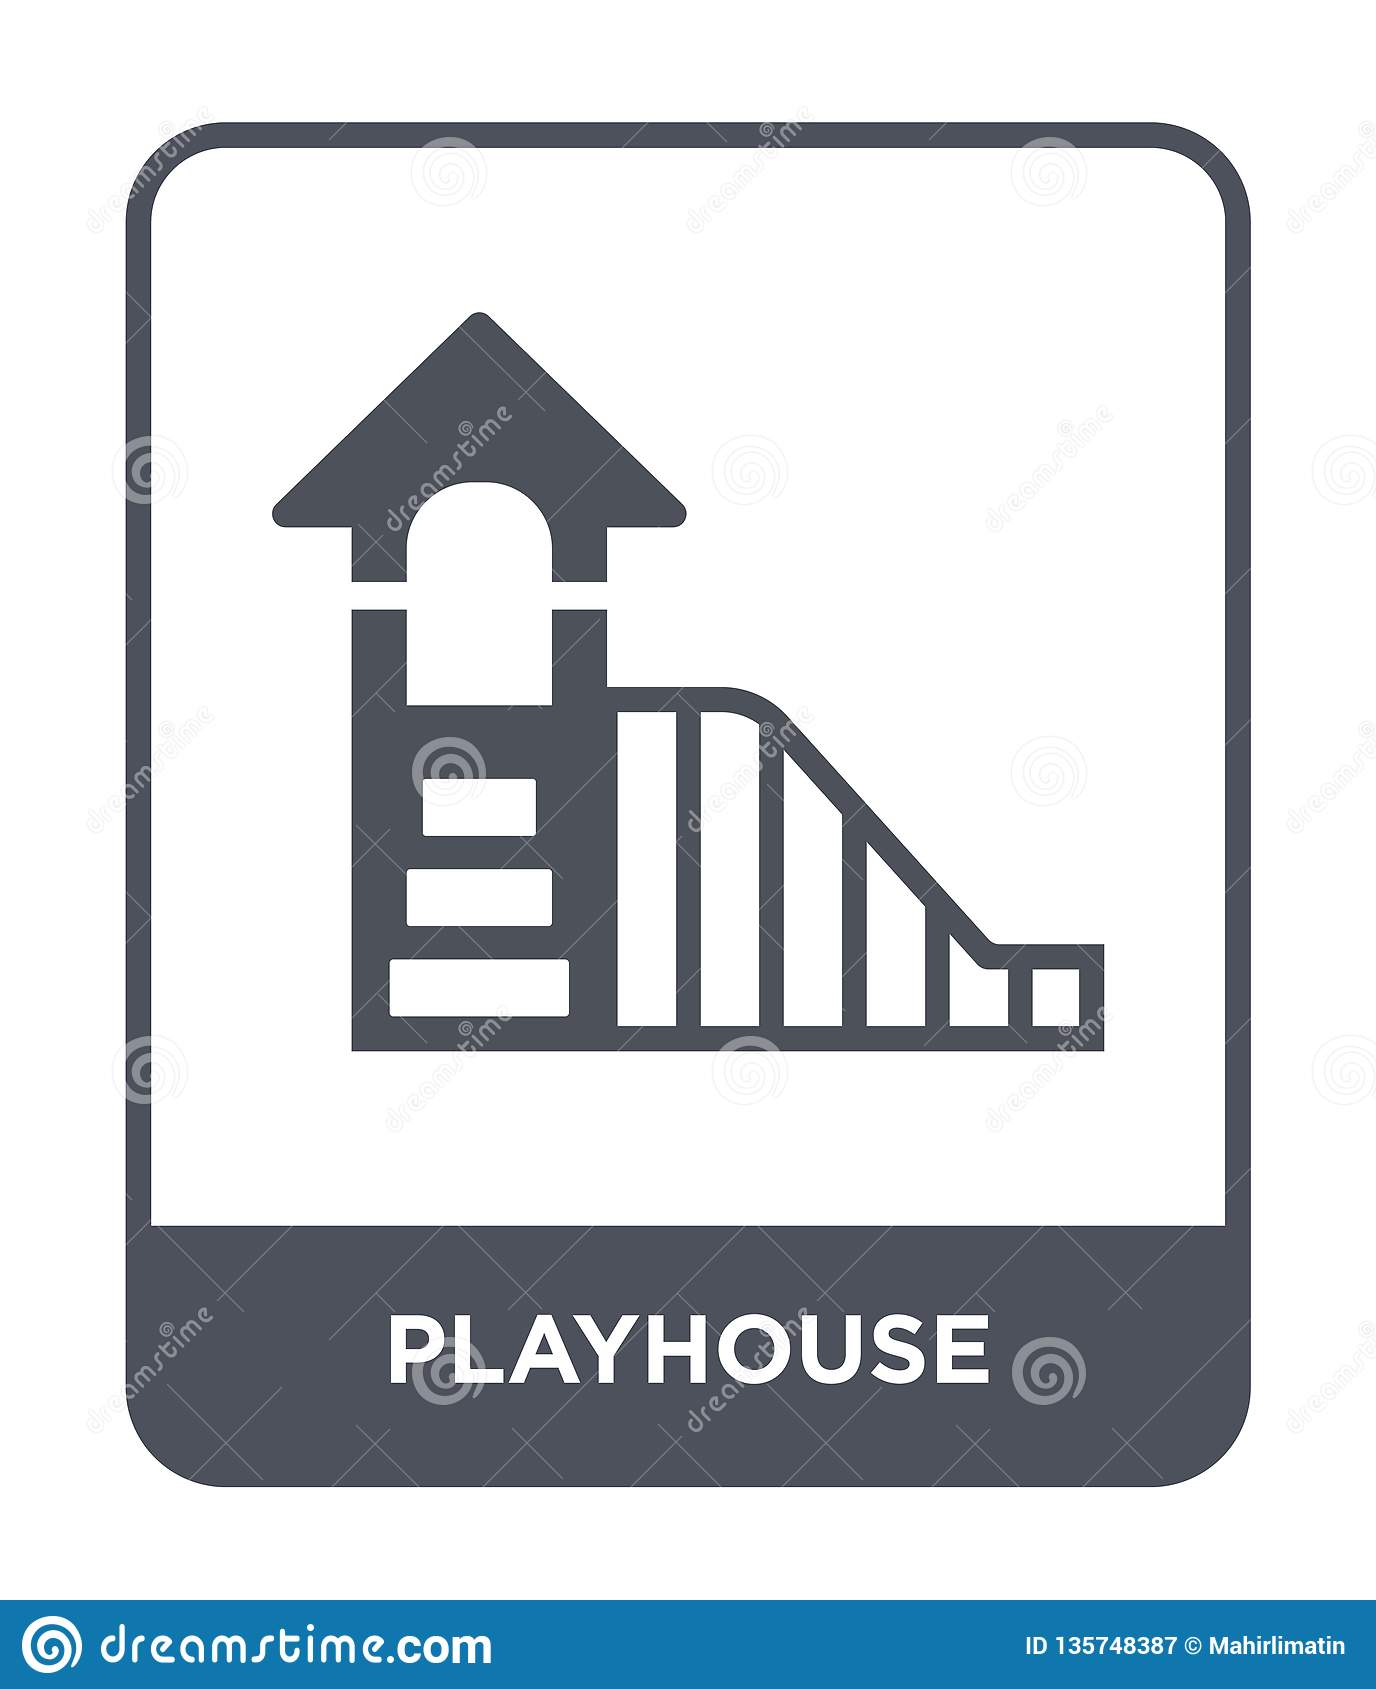 playhouse icon in trendy design style. playhouse icon isolated on white background. playhouse vector icon simple and modern flat